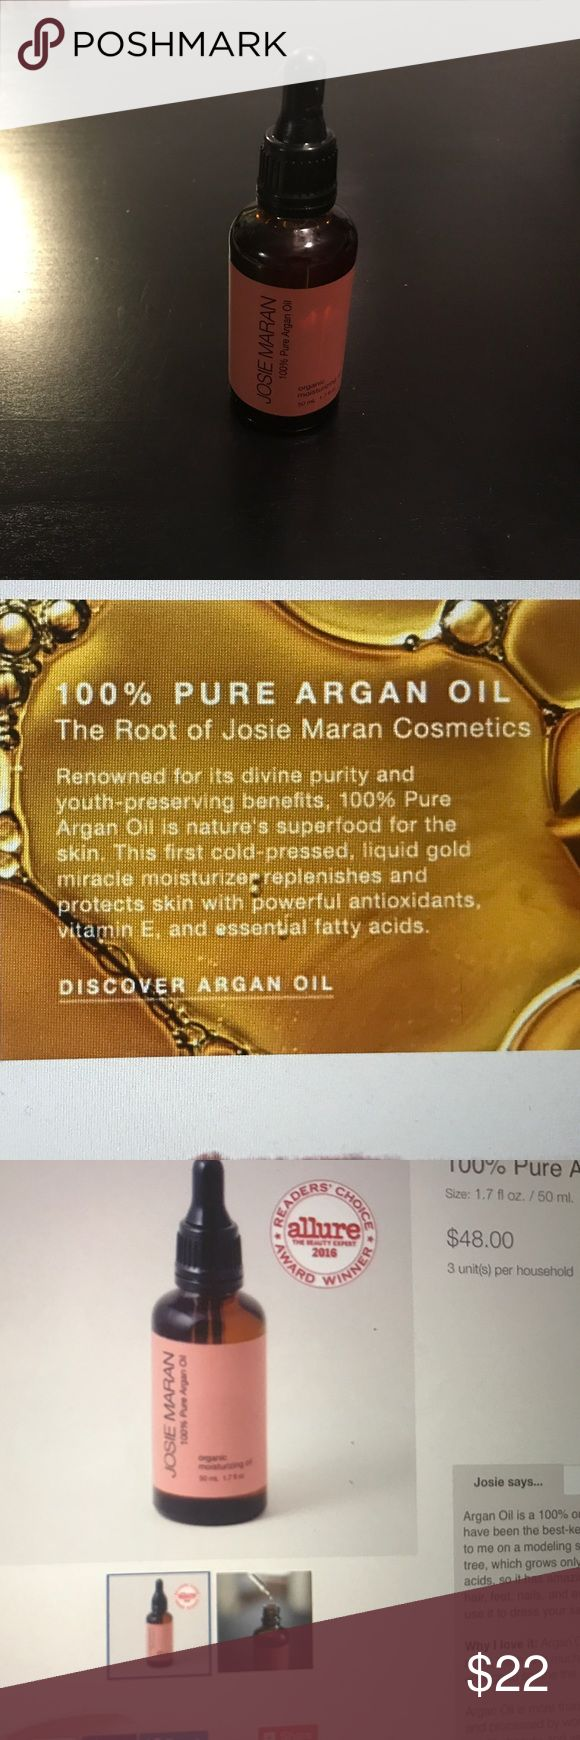 100% Argan Oil Josie Maran 100% pure Argan oil.  Never been opened.  This oil can be used on face, lips, hair, cuticles. josie maran Other